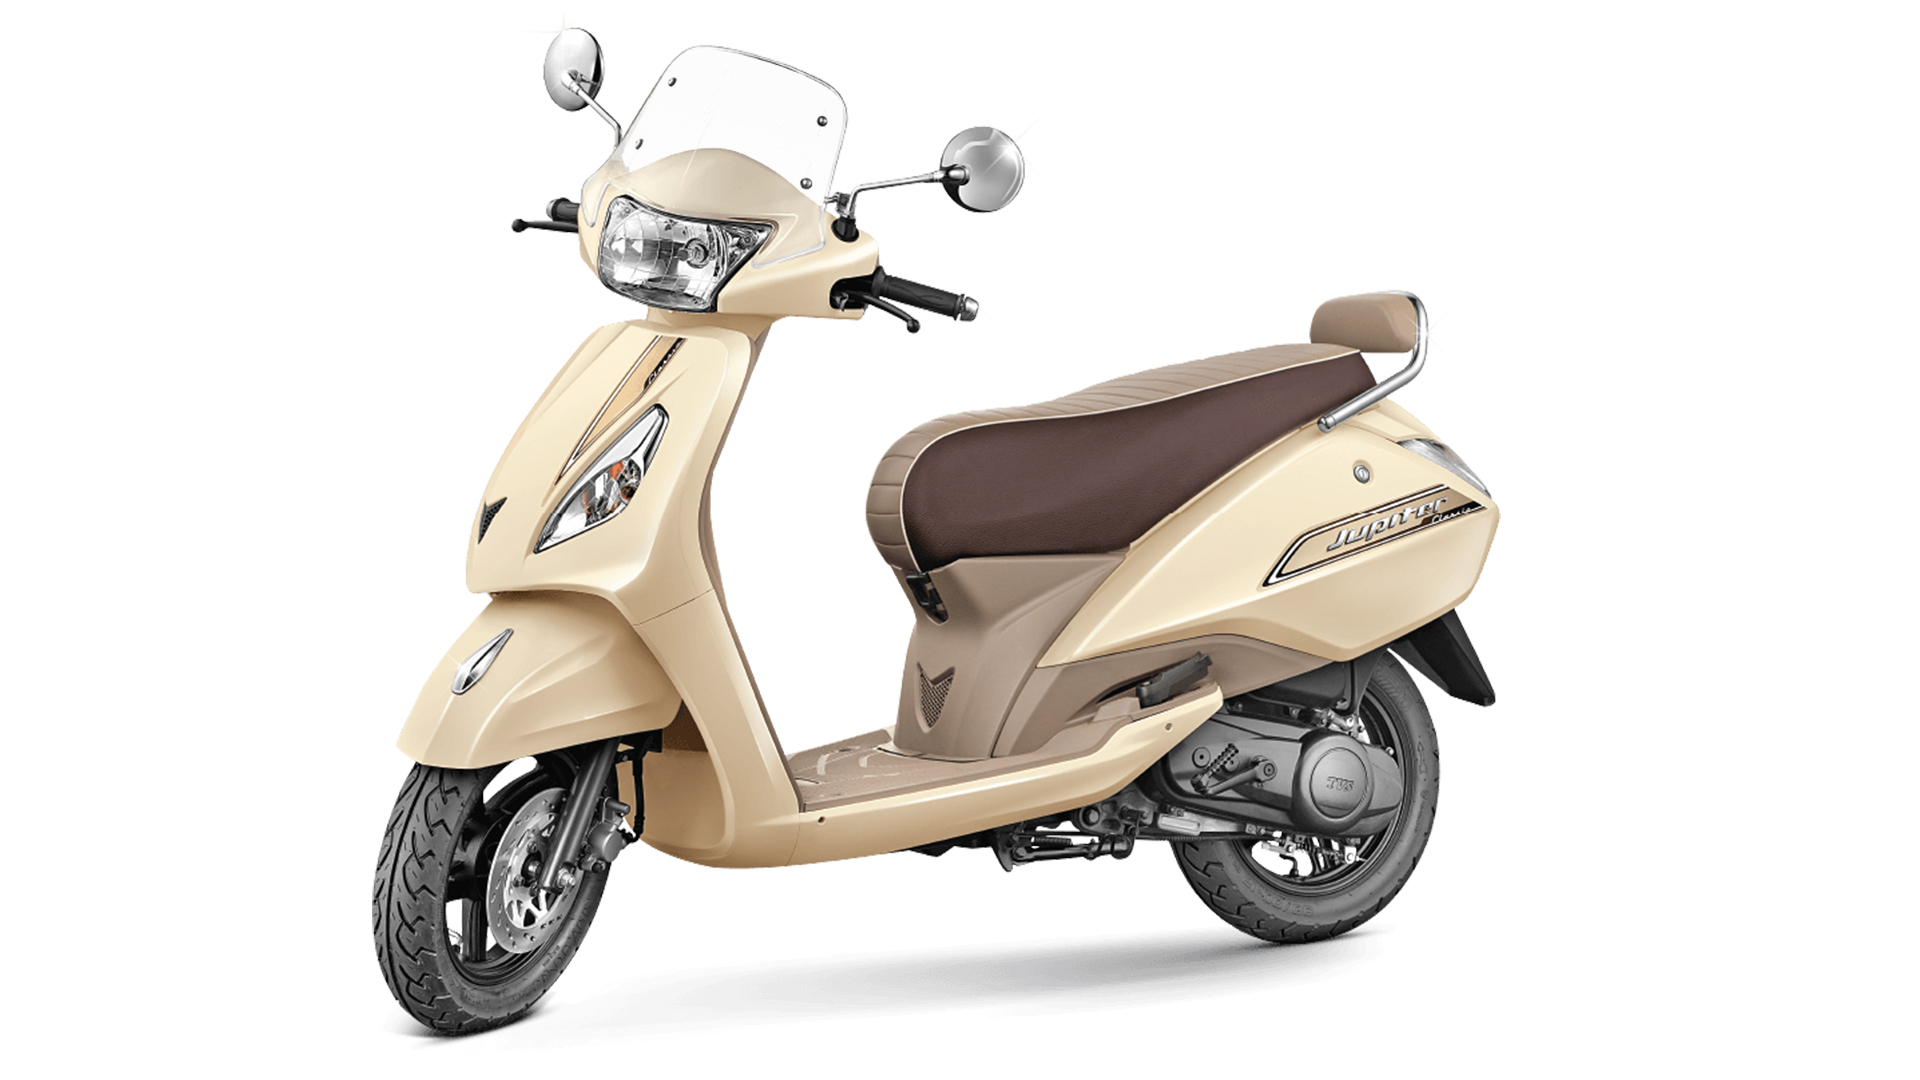 Tvs Jupiter 2017 Price Mileage Reviews Specification